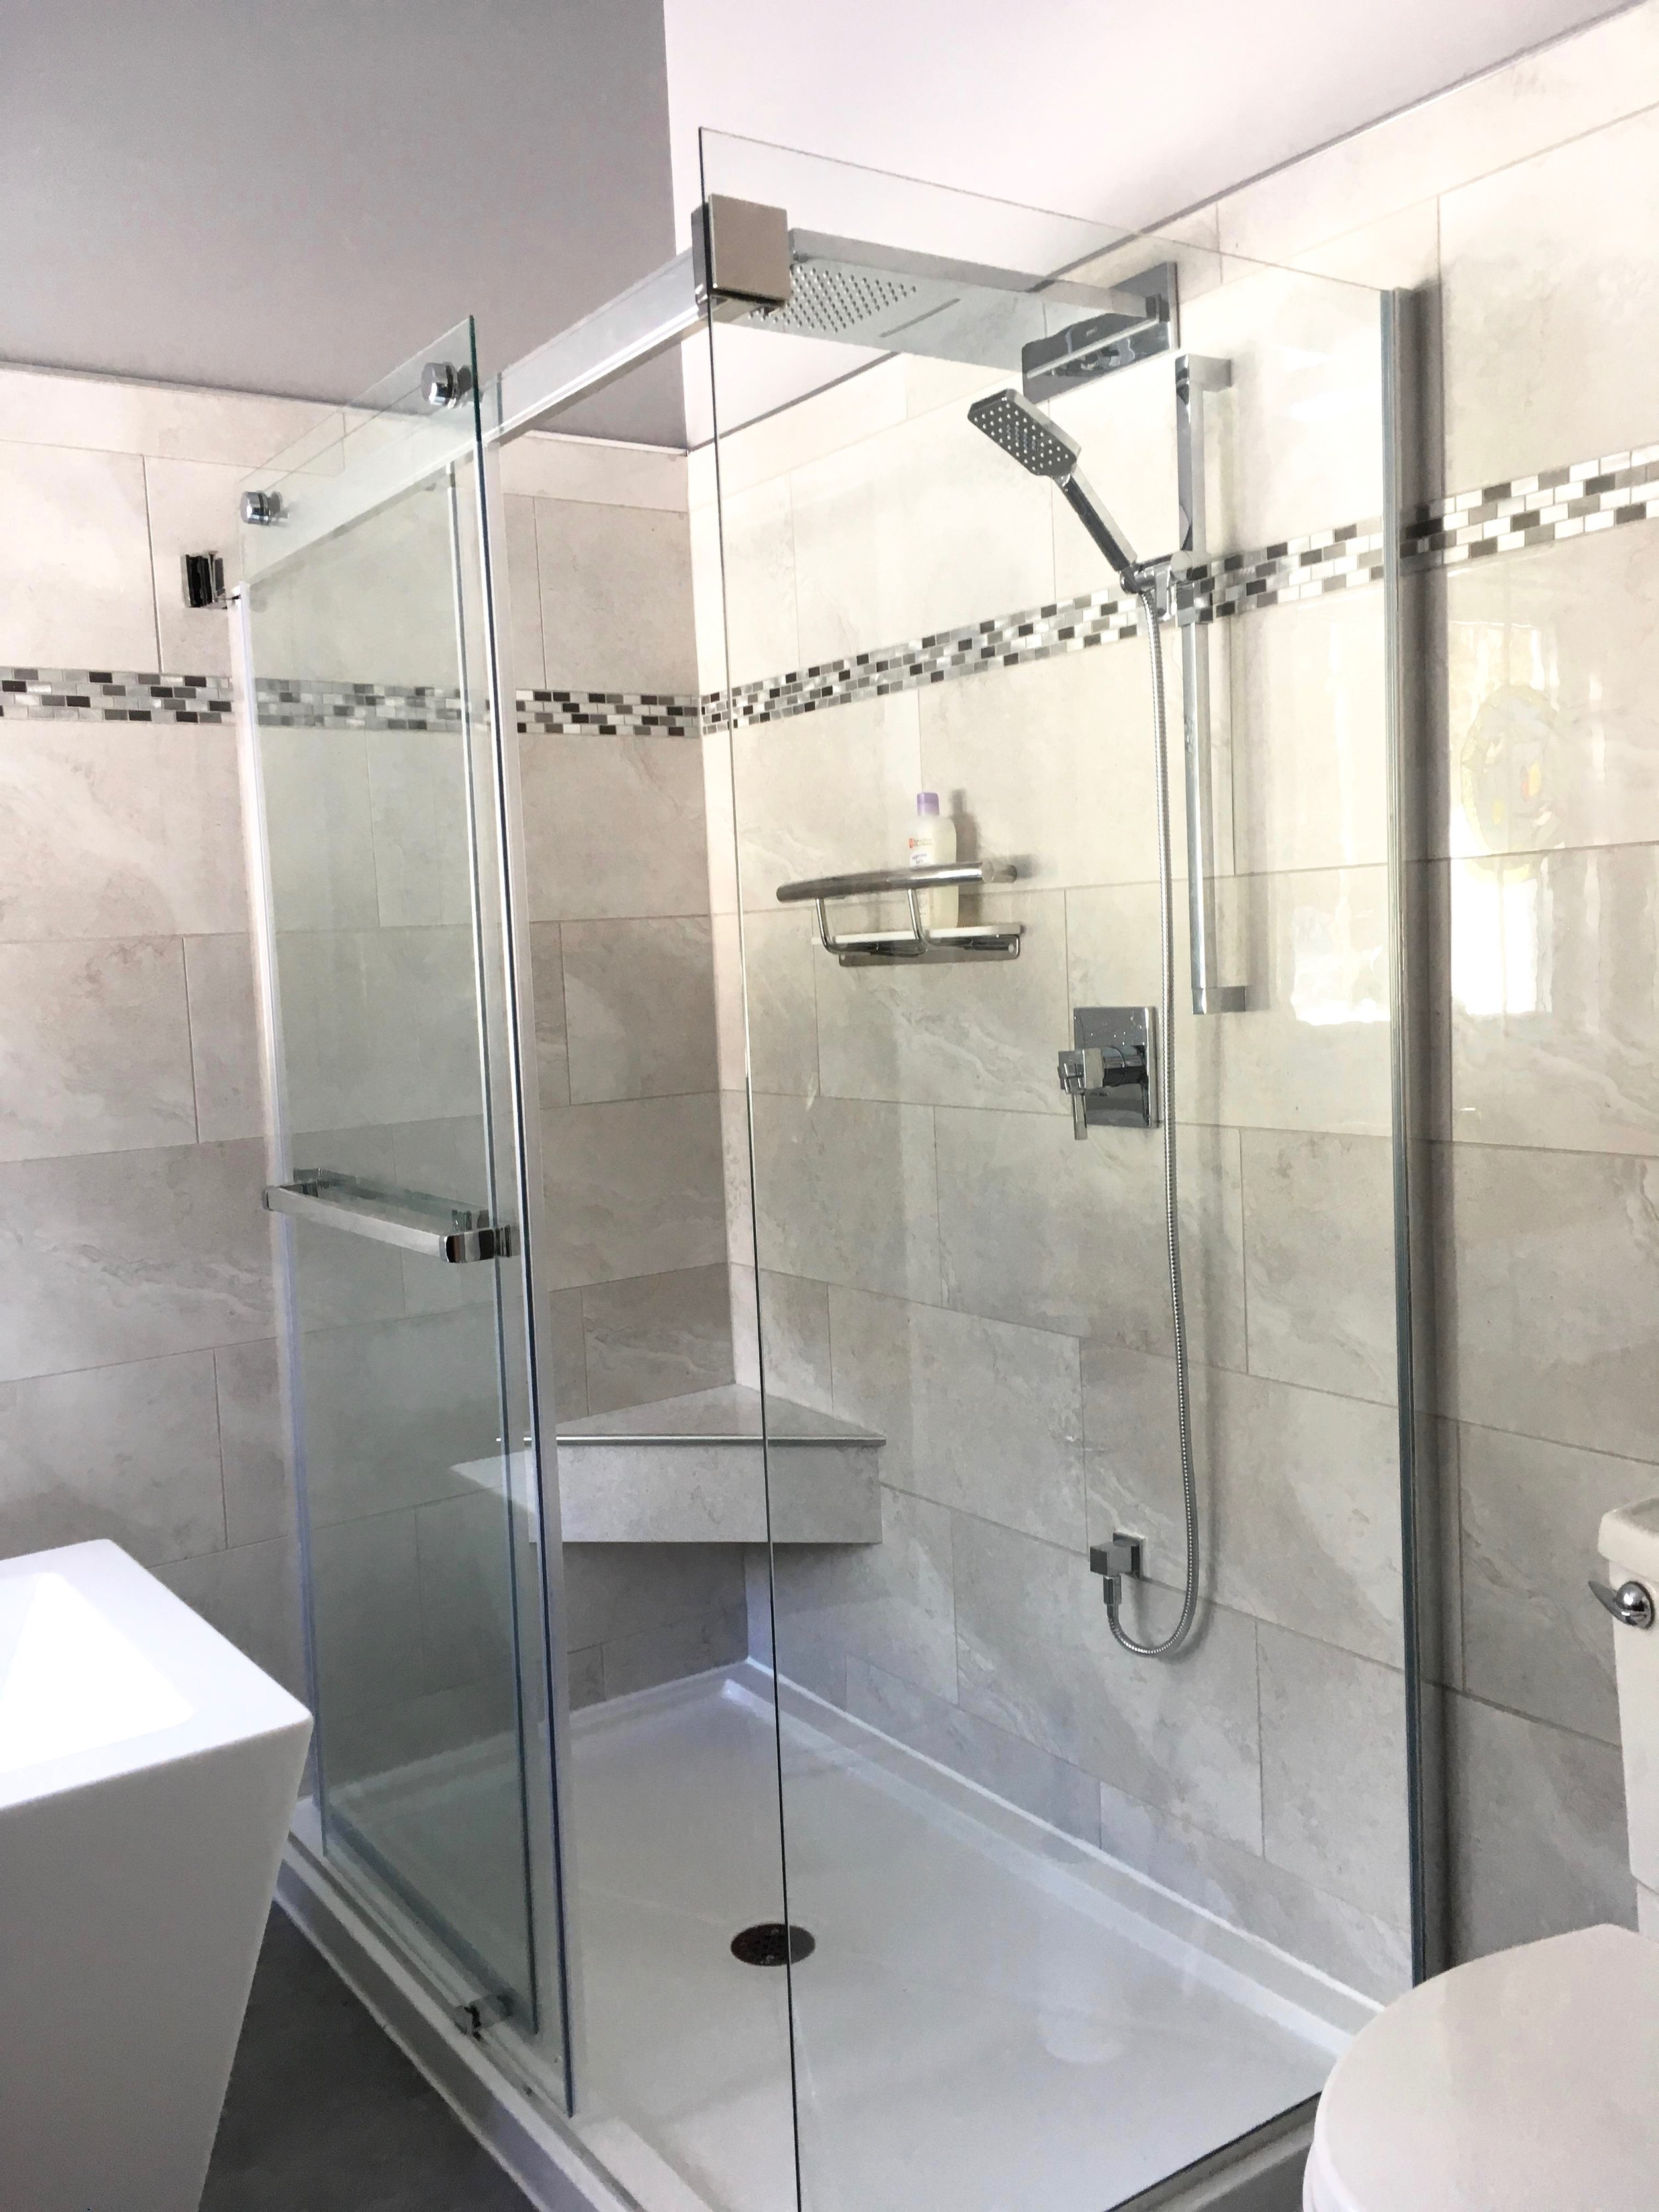 Free-standing shower stall with custom glass for 2 walls. Built-in bench